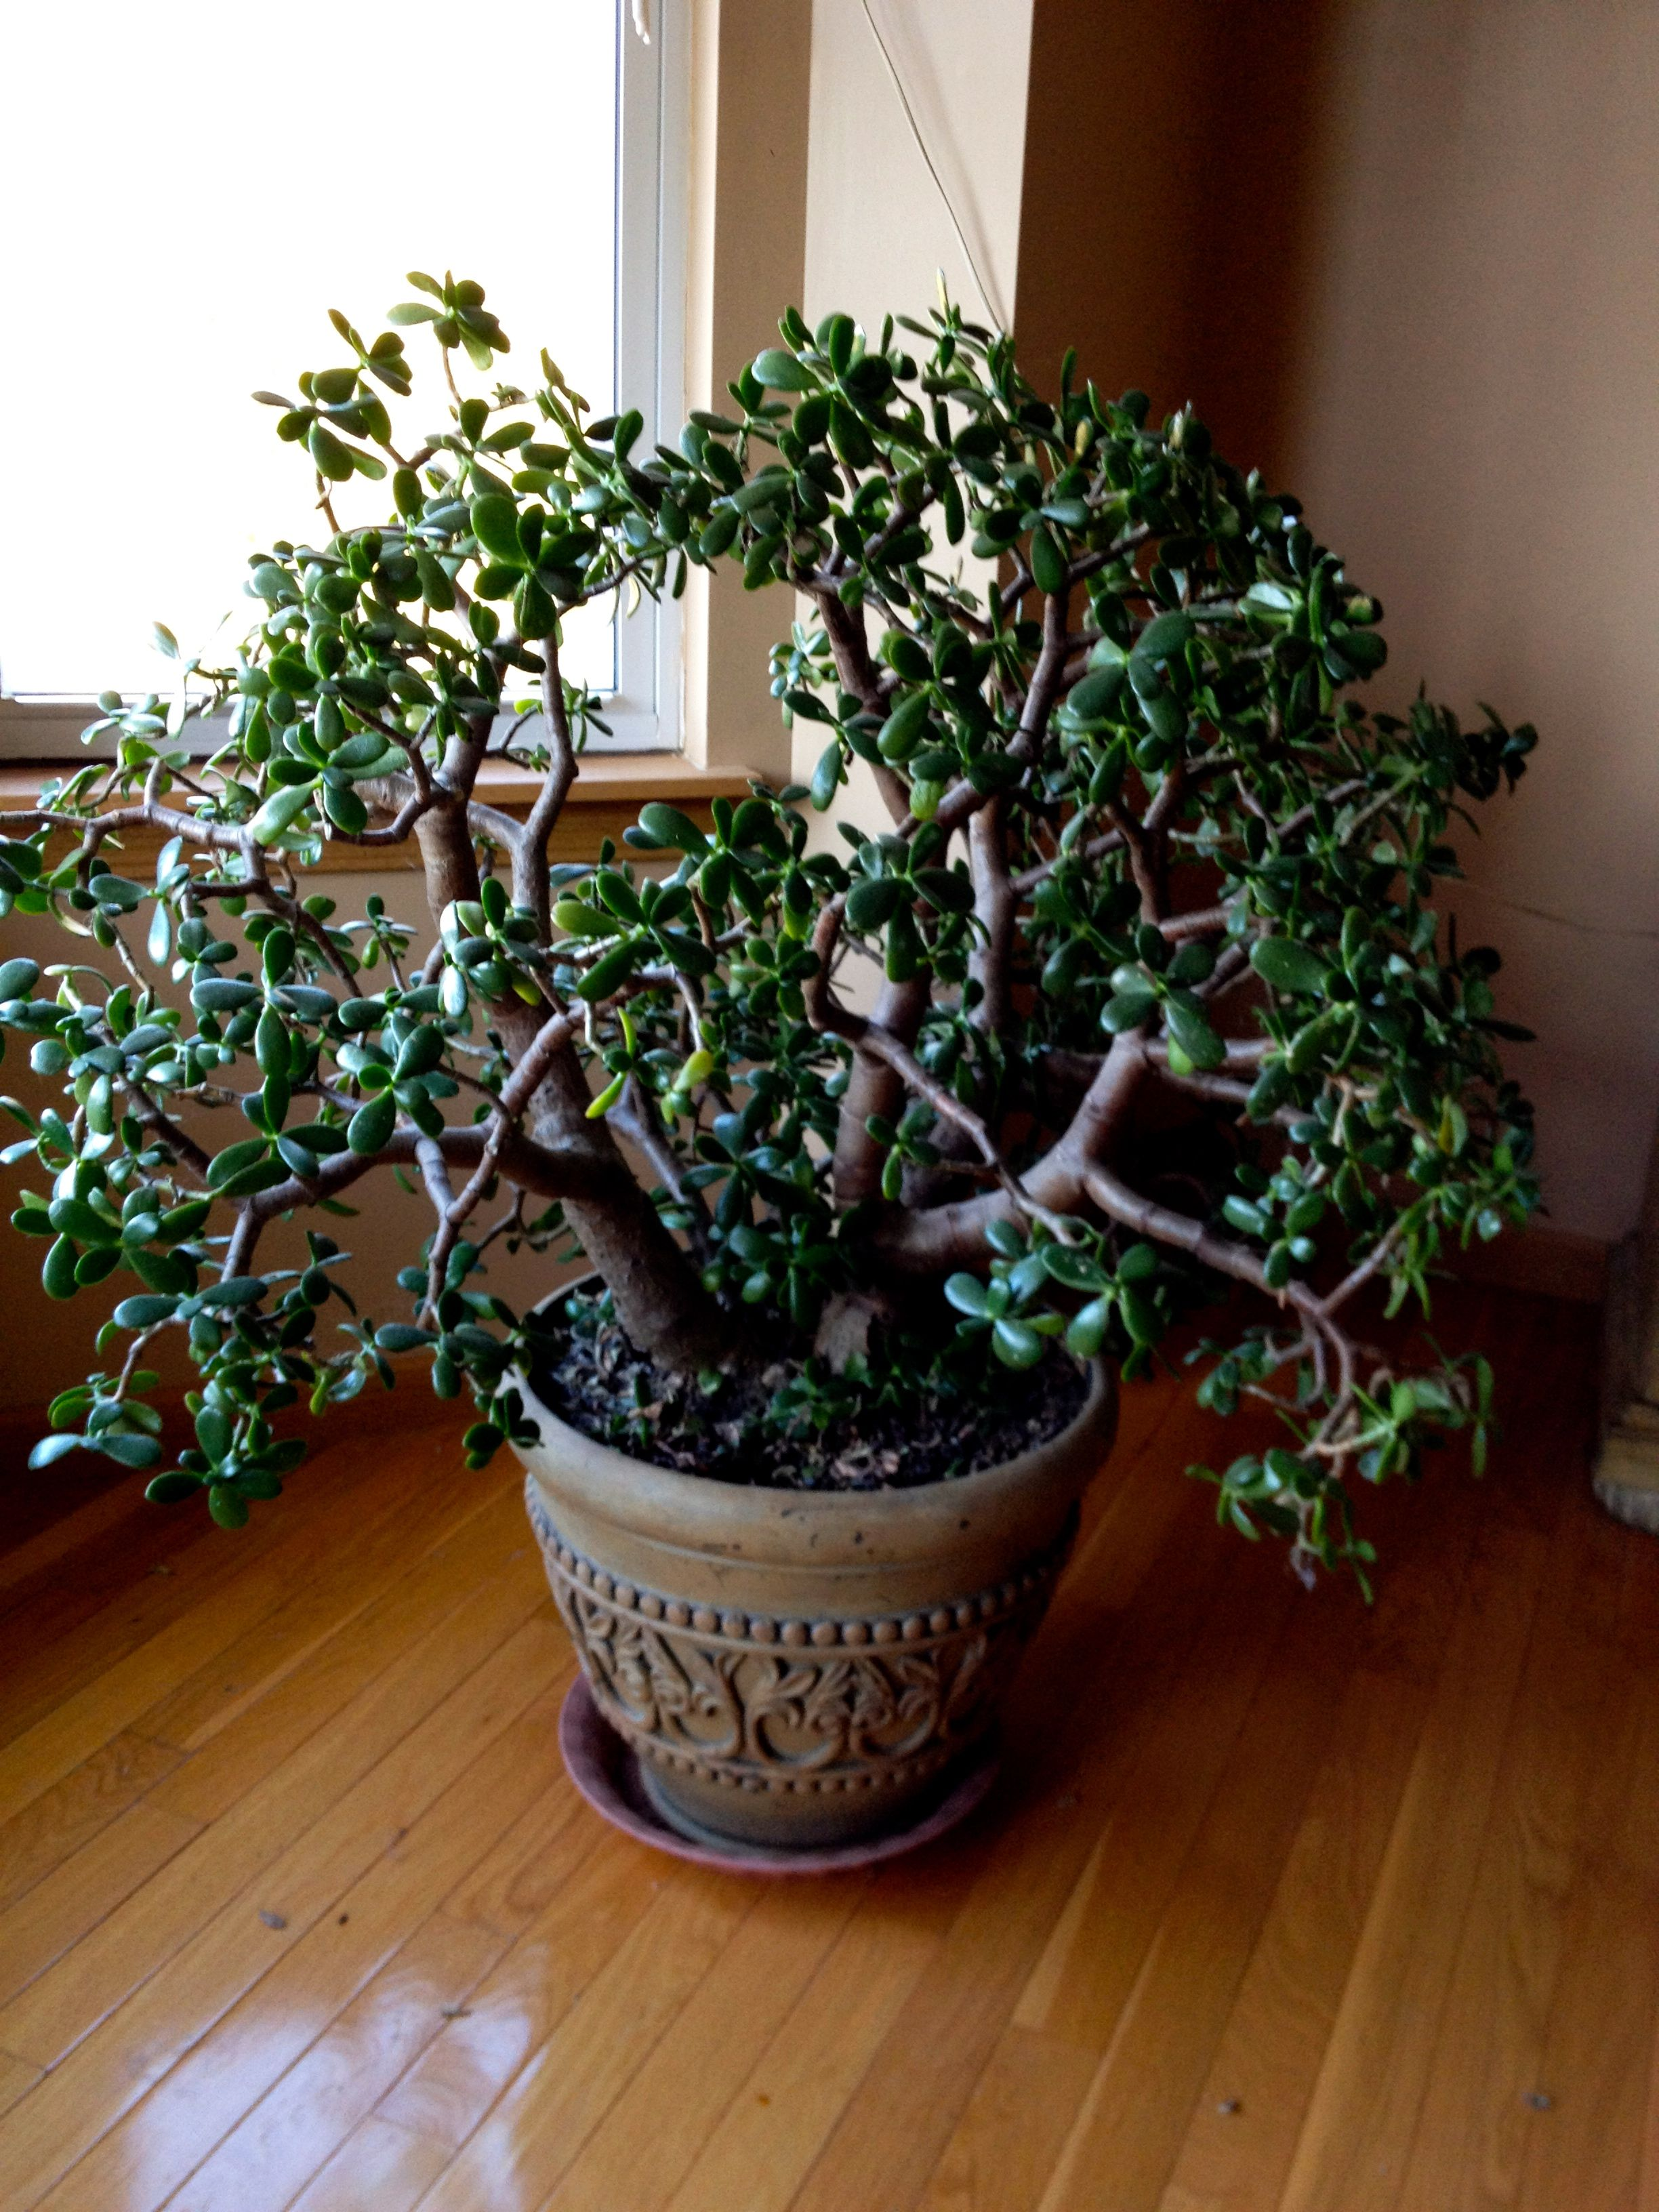 Jade Pflanze My Jade Plant I Had In San Antonio Grew To Be About This Big As